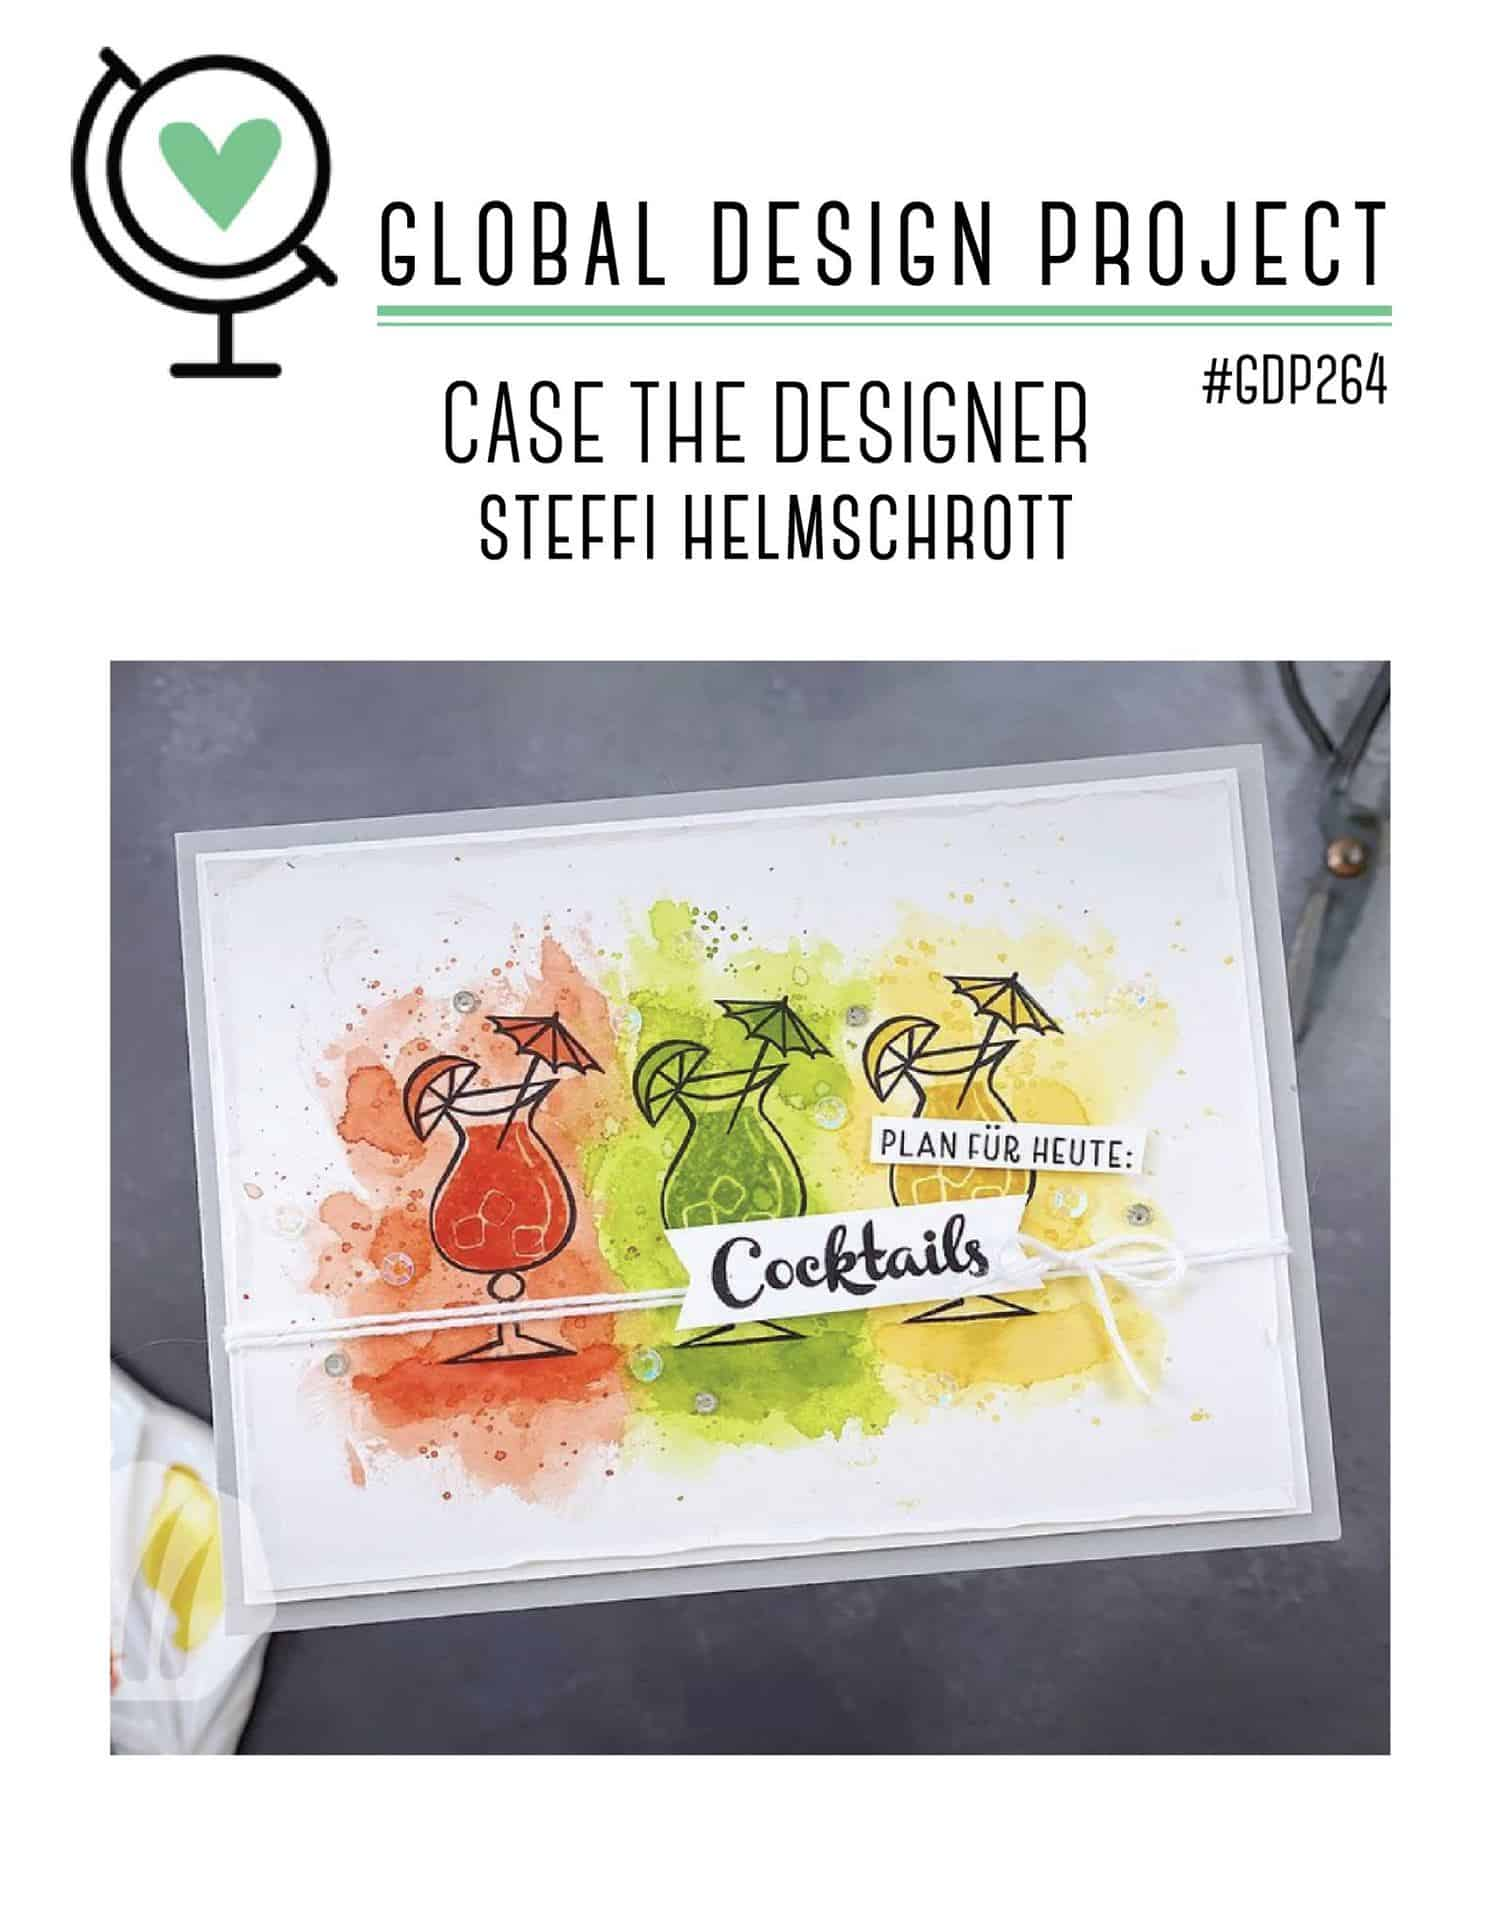 Global Design Project 264